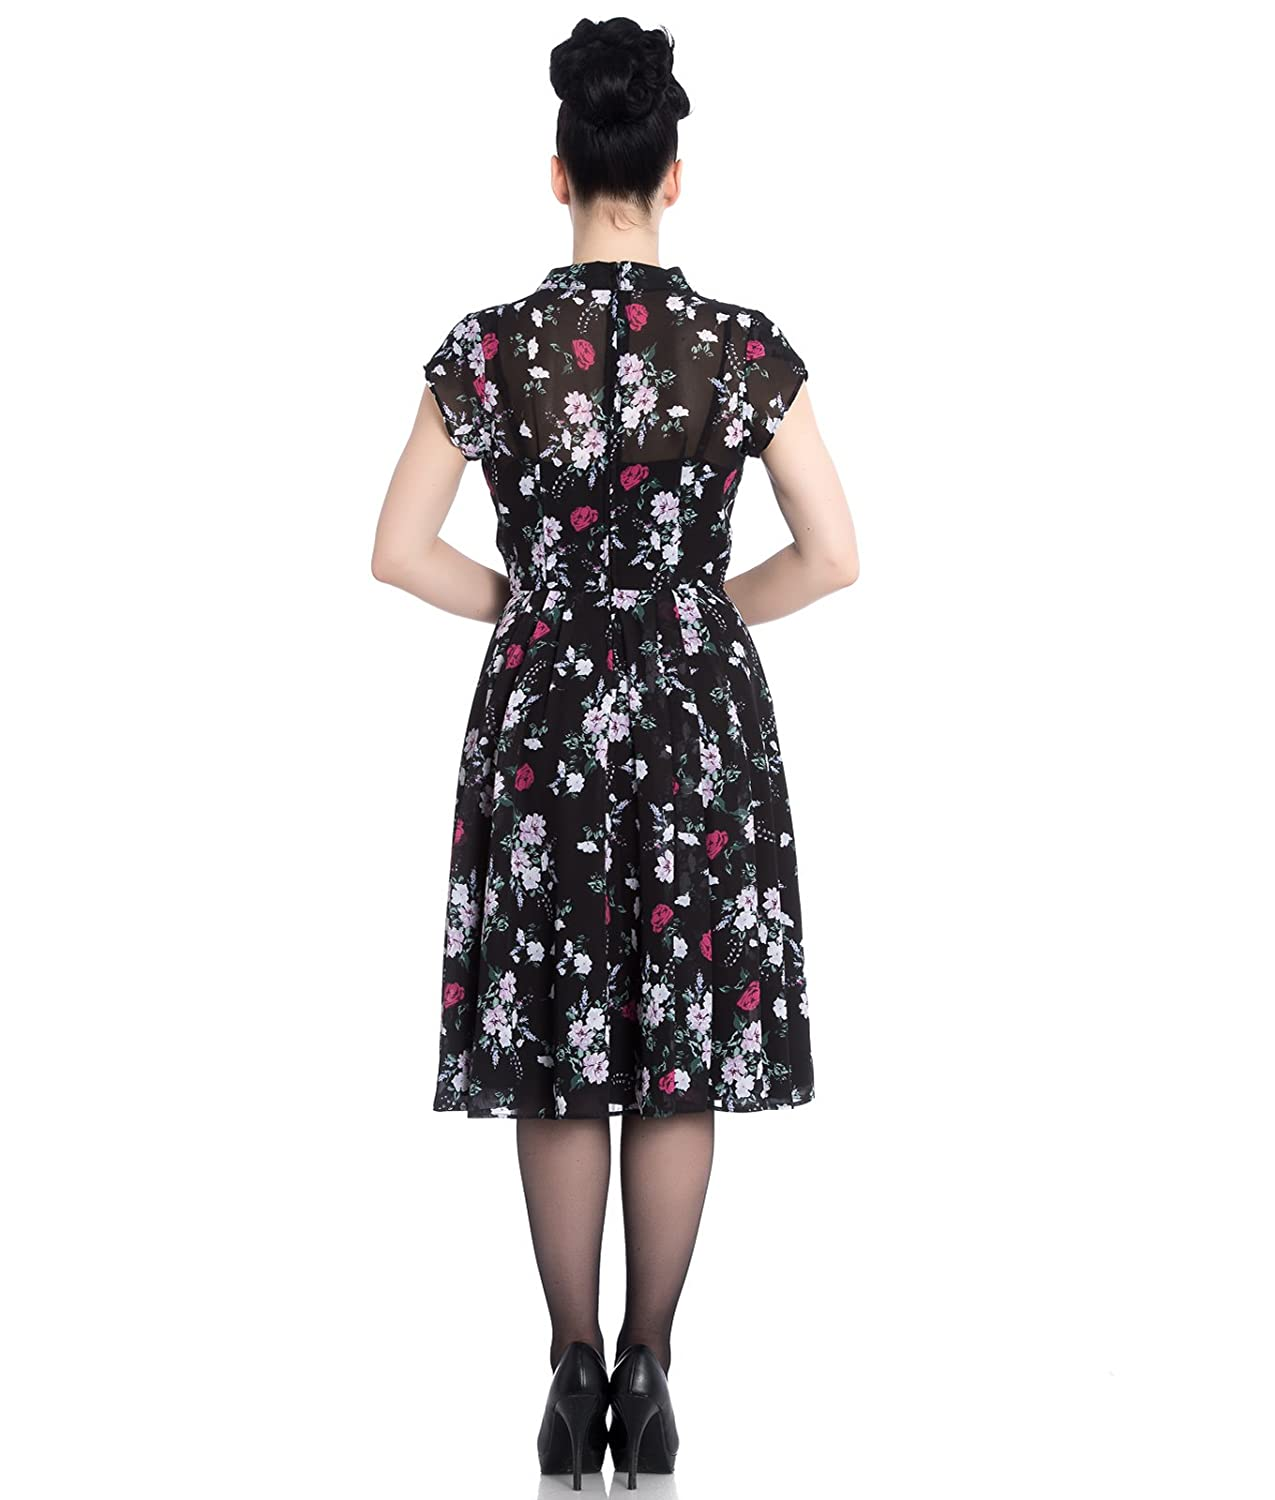 6de304030d7 Hell Bunny Belleville Vintage 40s Floral Chiffon Tea Dress  Amazon.co.uk   Clothing